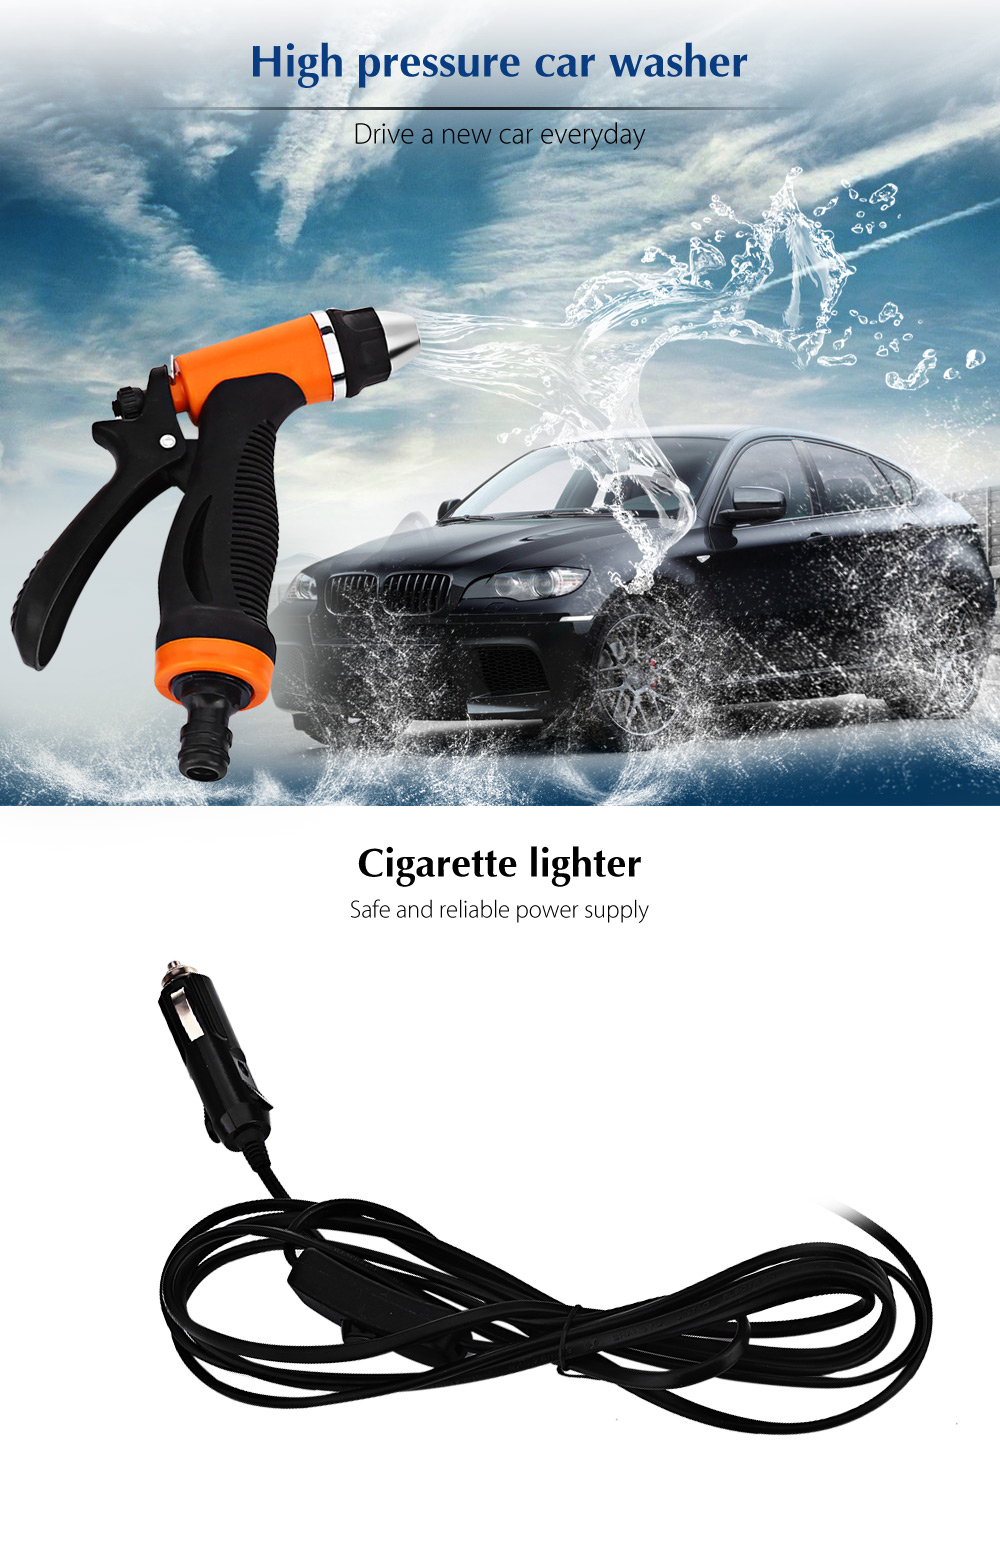 BOJIN 80W 12V High Pressure Cleaning Pump Portable Car Washing Machine Vehicular Self-priming Wash Device